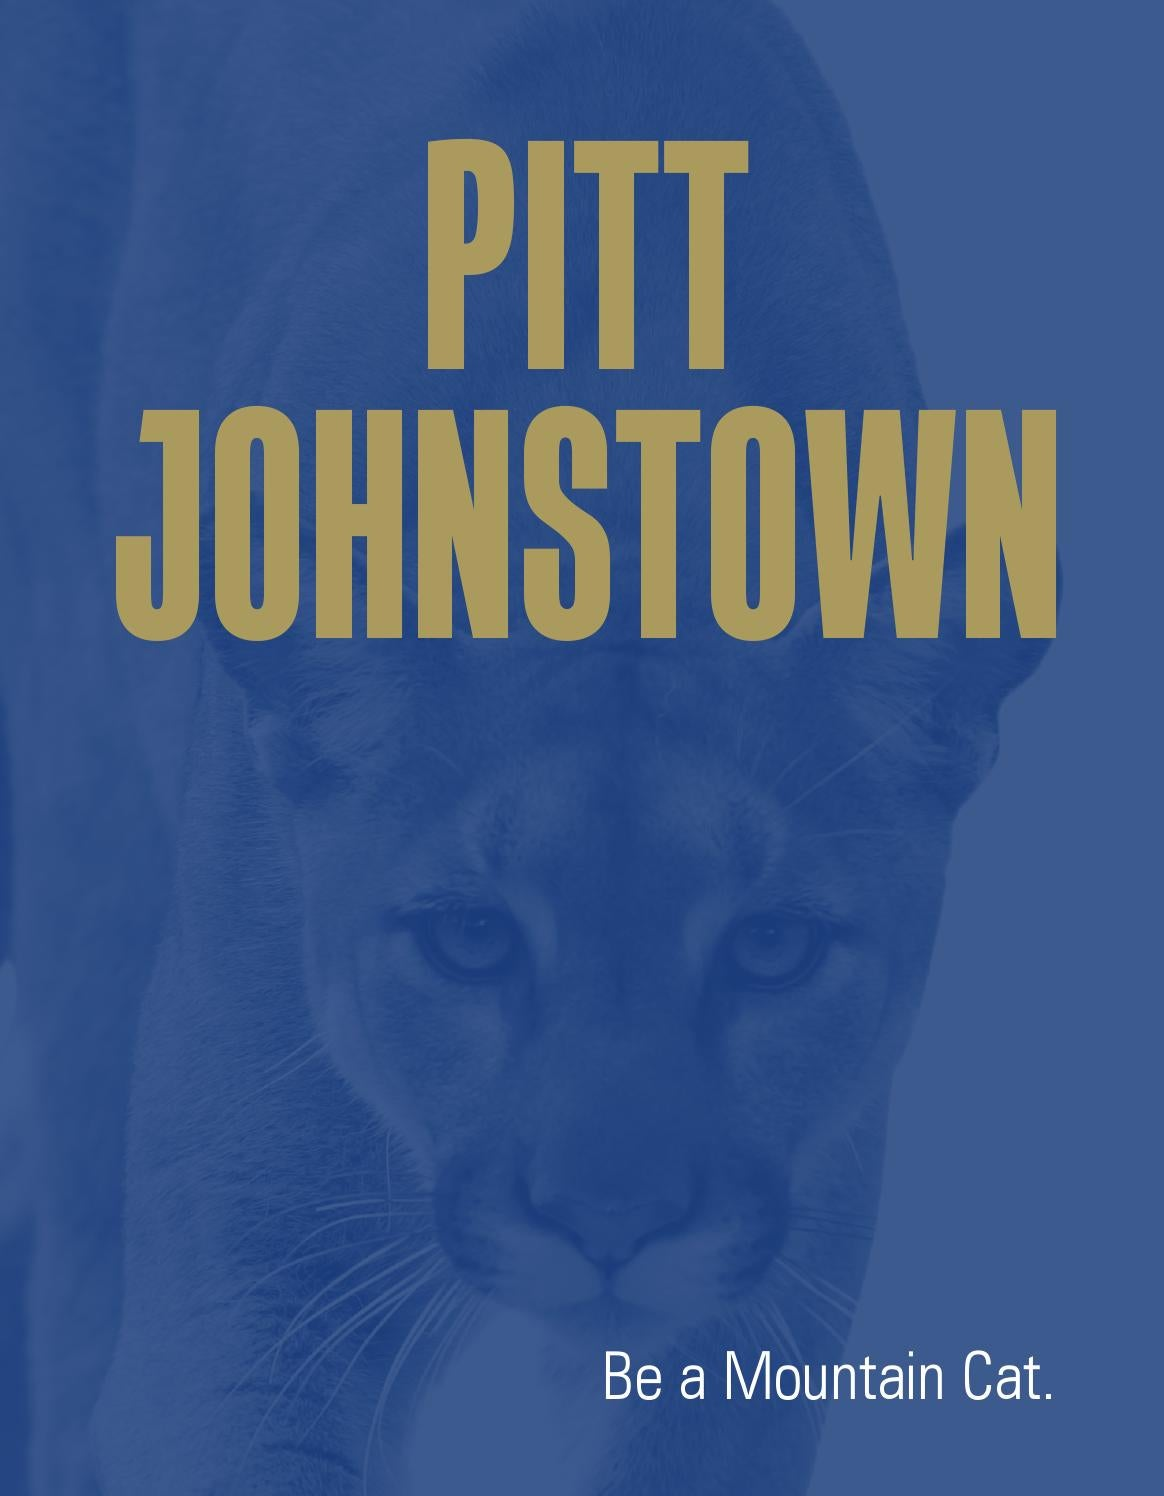 pittjohnstown viewbook by pittjohnstown issuu